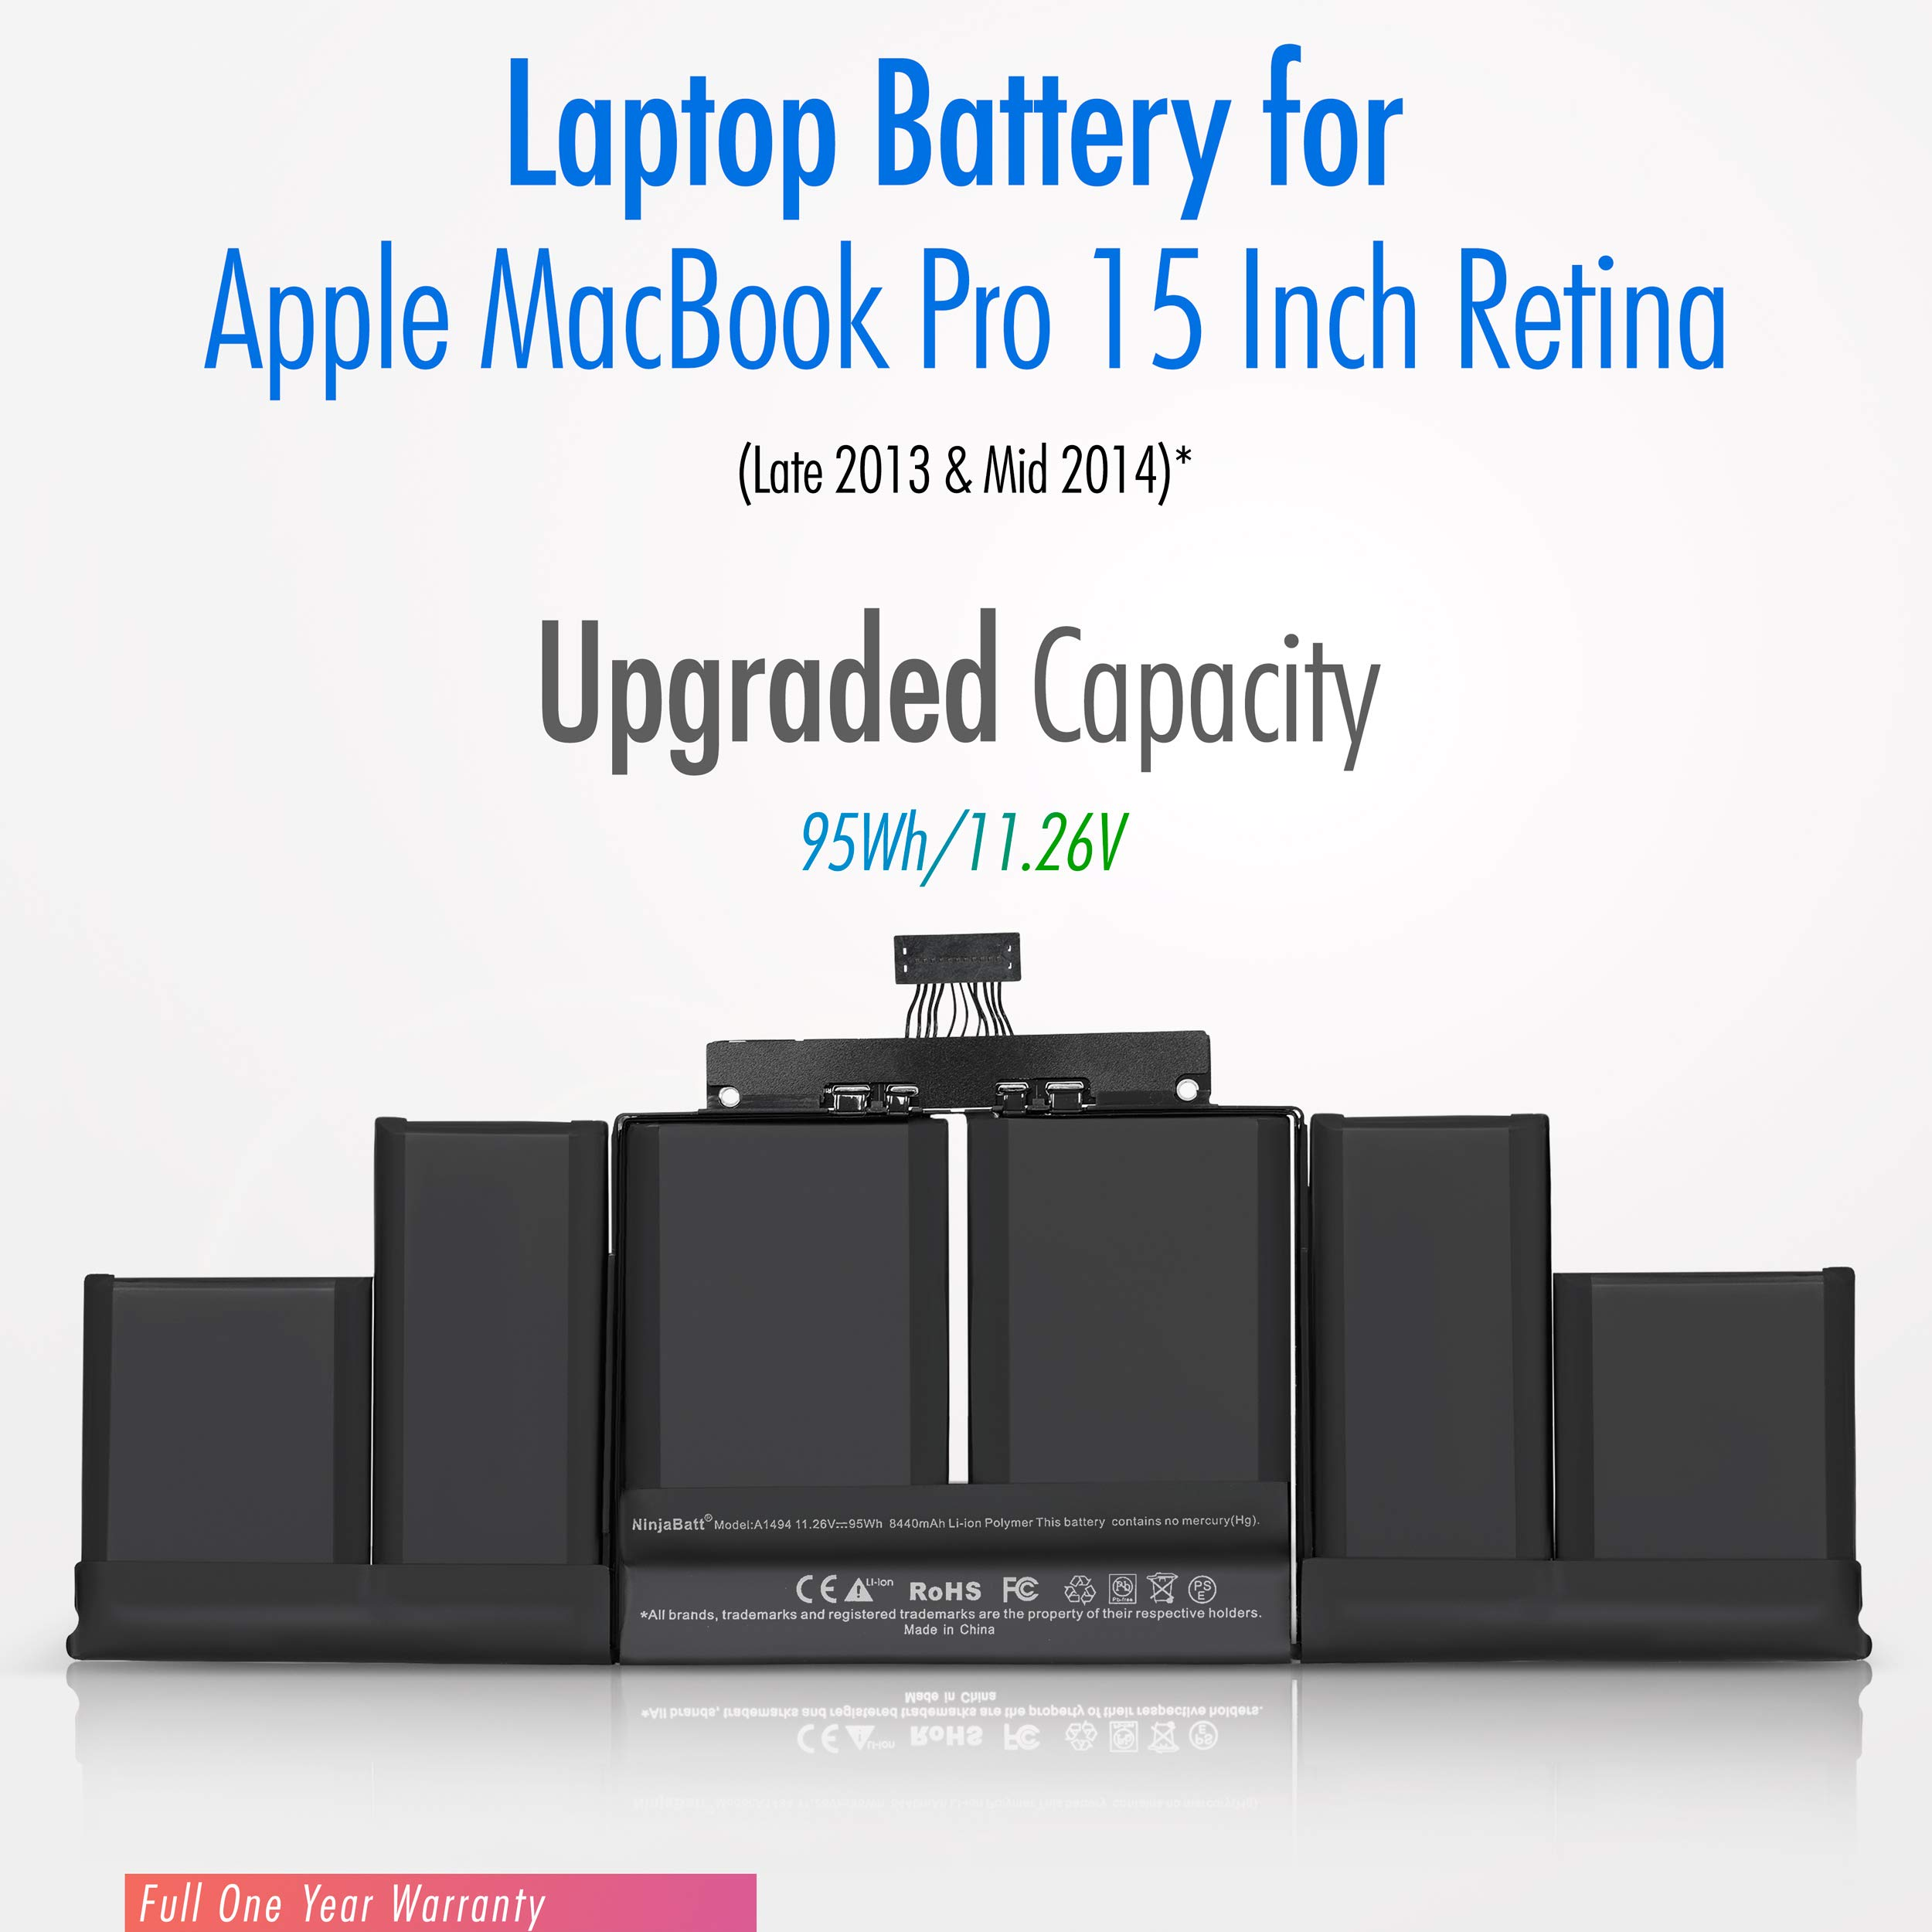 Fit for MacBookPro 11,2-11,5 2013 2014 2015 MacBook pro Battery A1398 Puredick A1494 A1398 Battery for MacBook Pro Battery 15 inch Retina Mid 2015 2014 Late 2013 Not for A1398 Early 2013